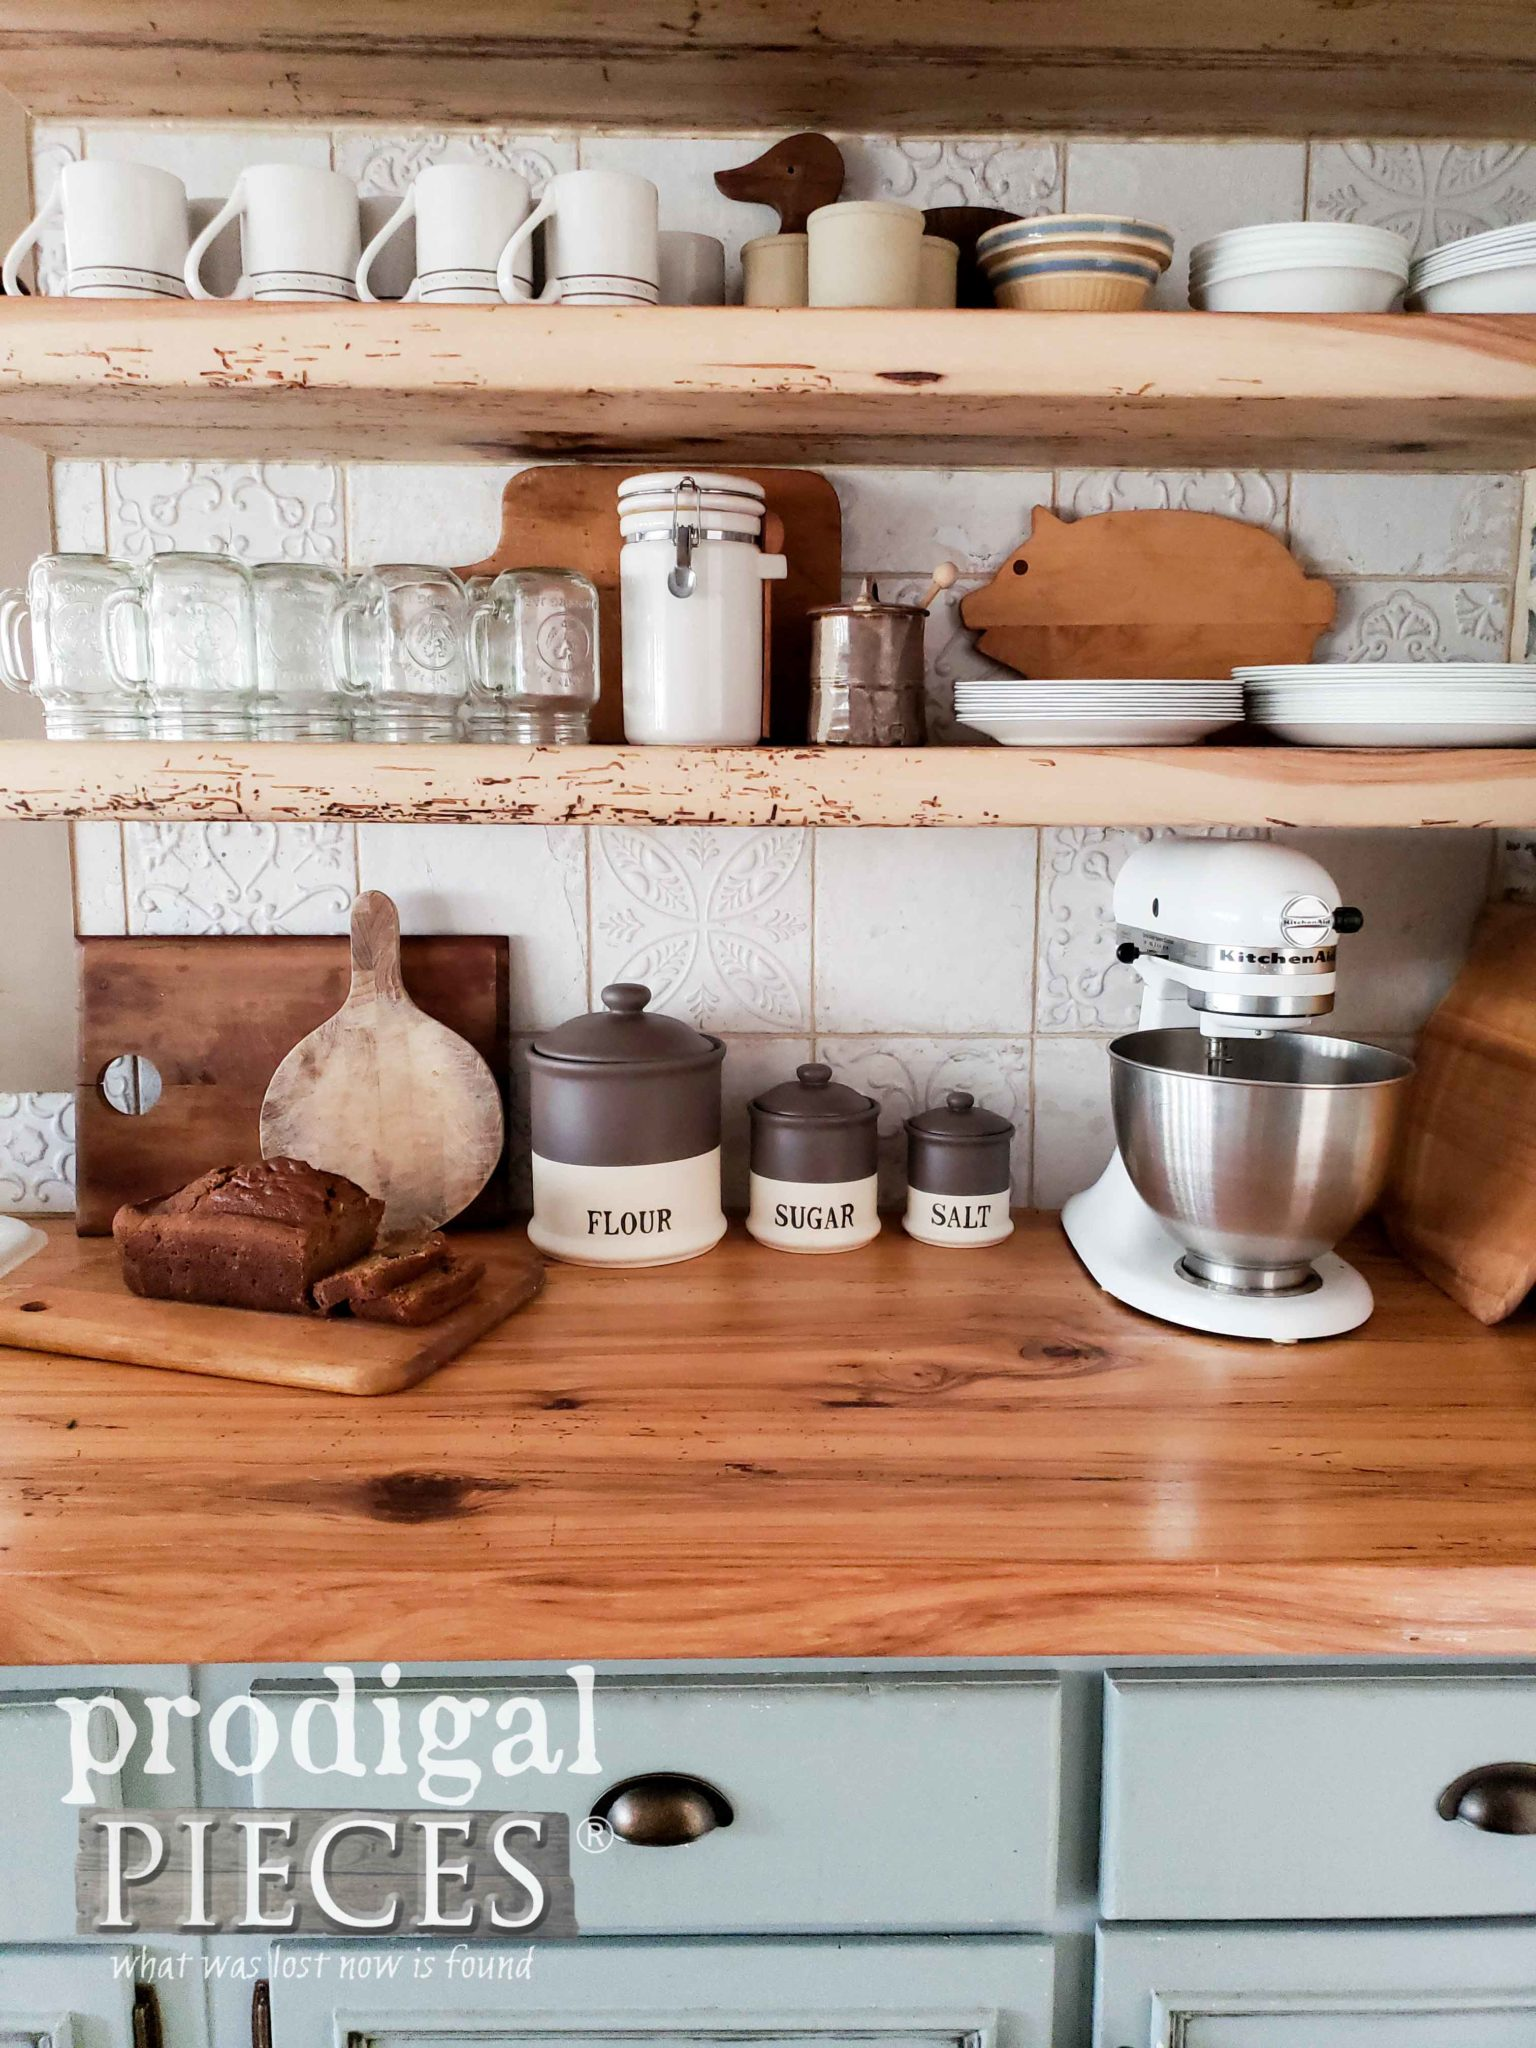 Farmhouse Style Kitchen with DIY decor by Larissa of Prodigal Pieces | prodigalpieces.com